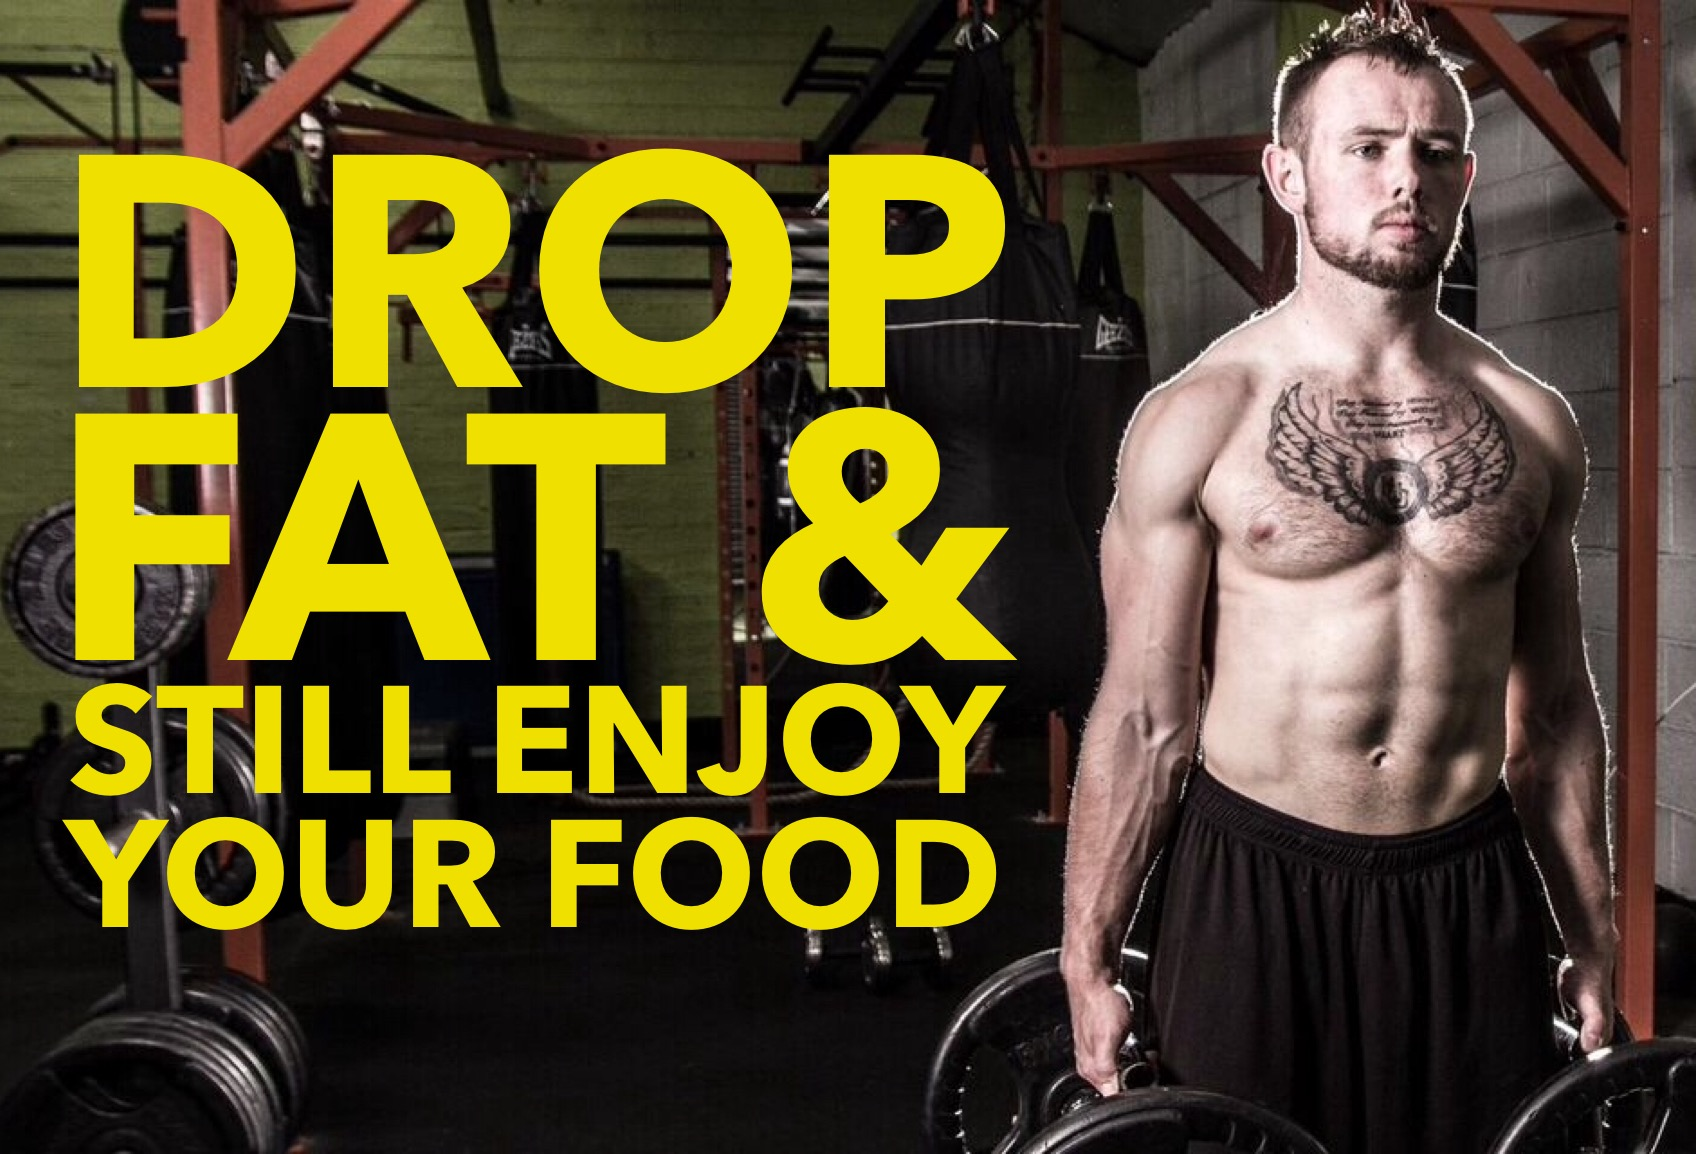 Eat the food you enjoy & lose fat